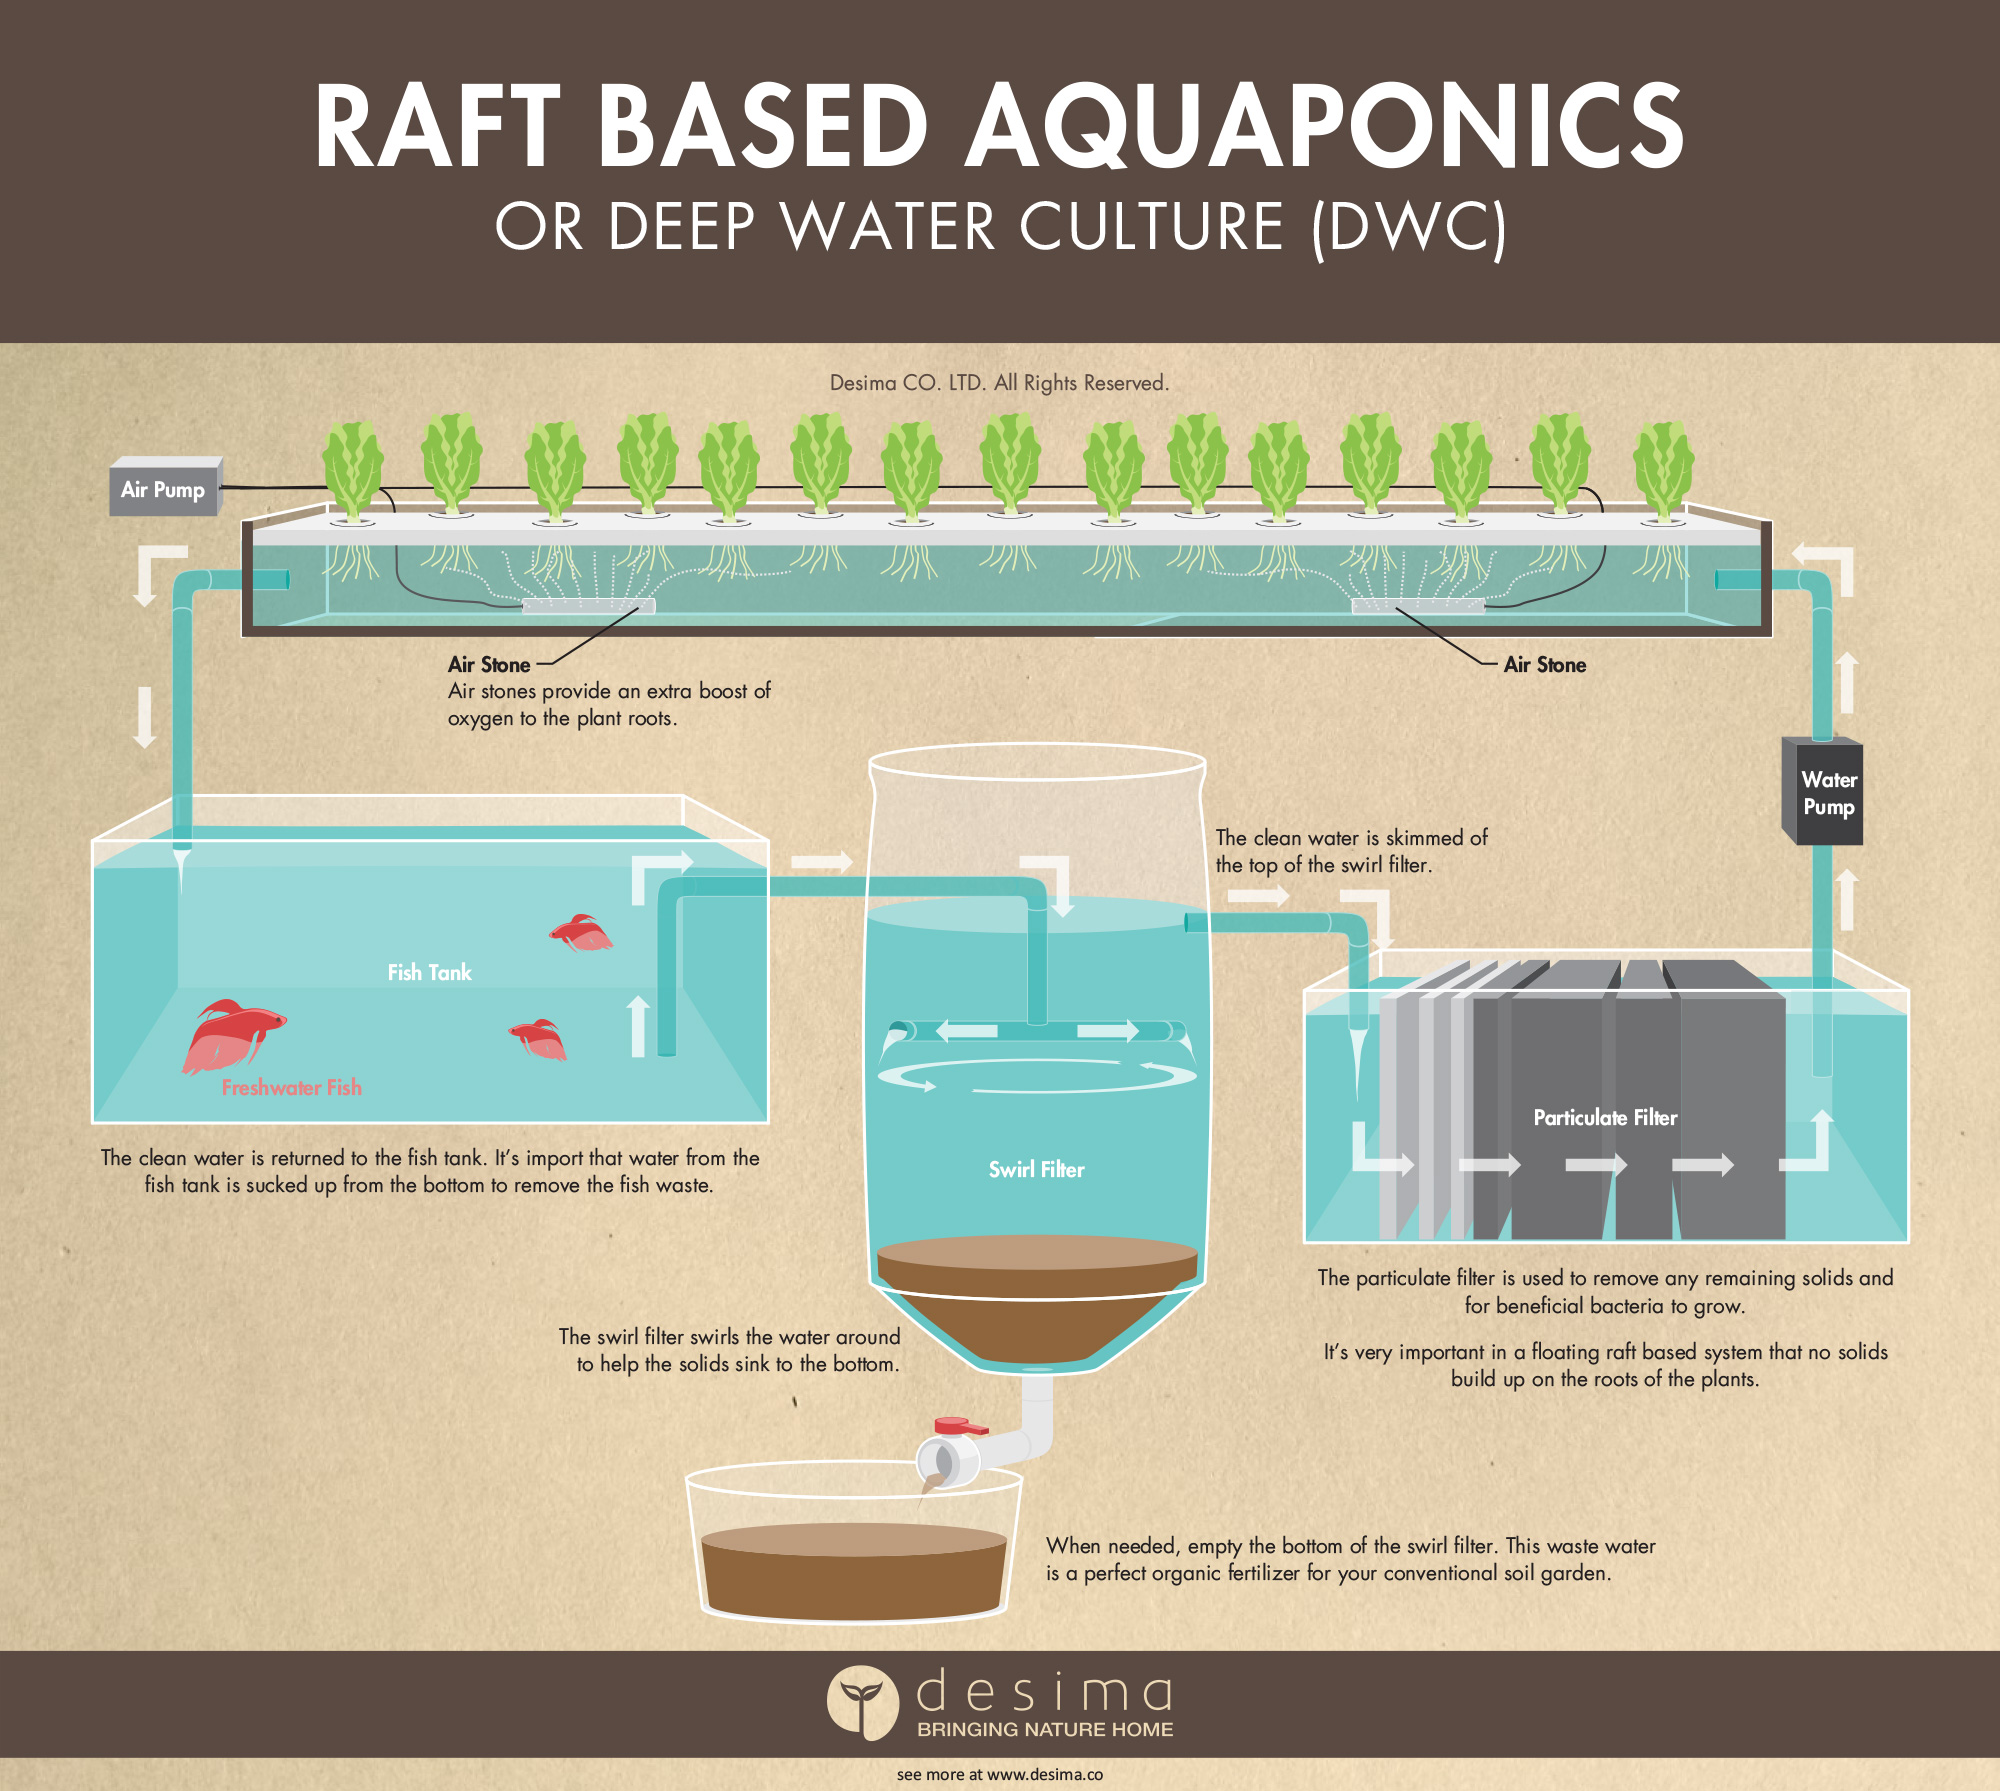 hight resolution of raft based aquaponics or otherwise known as deep water culture dwc infographic